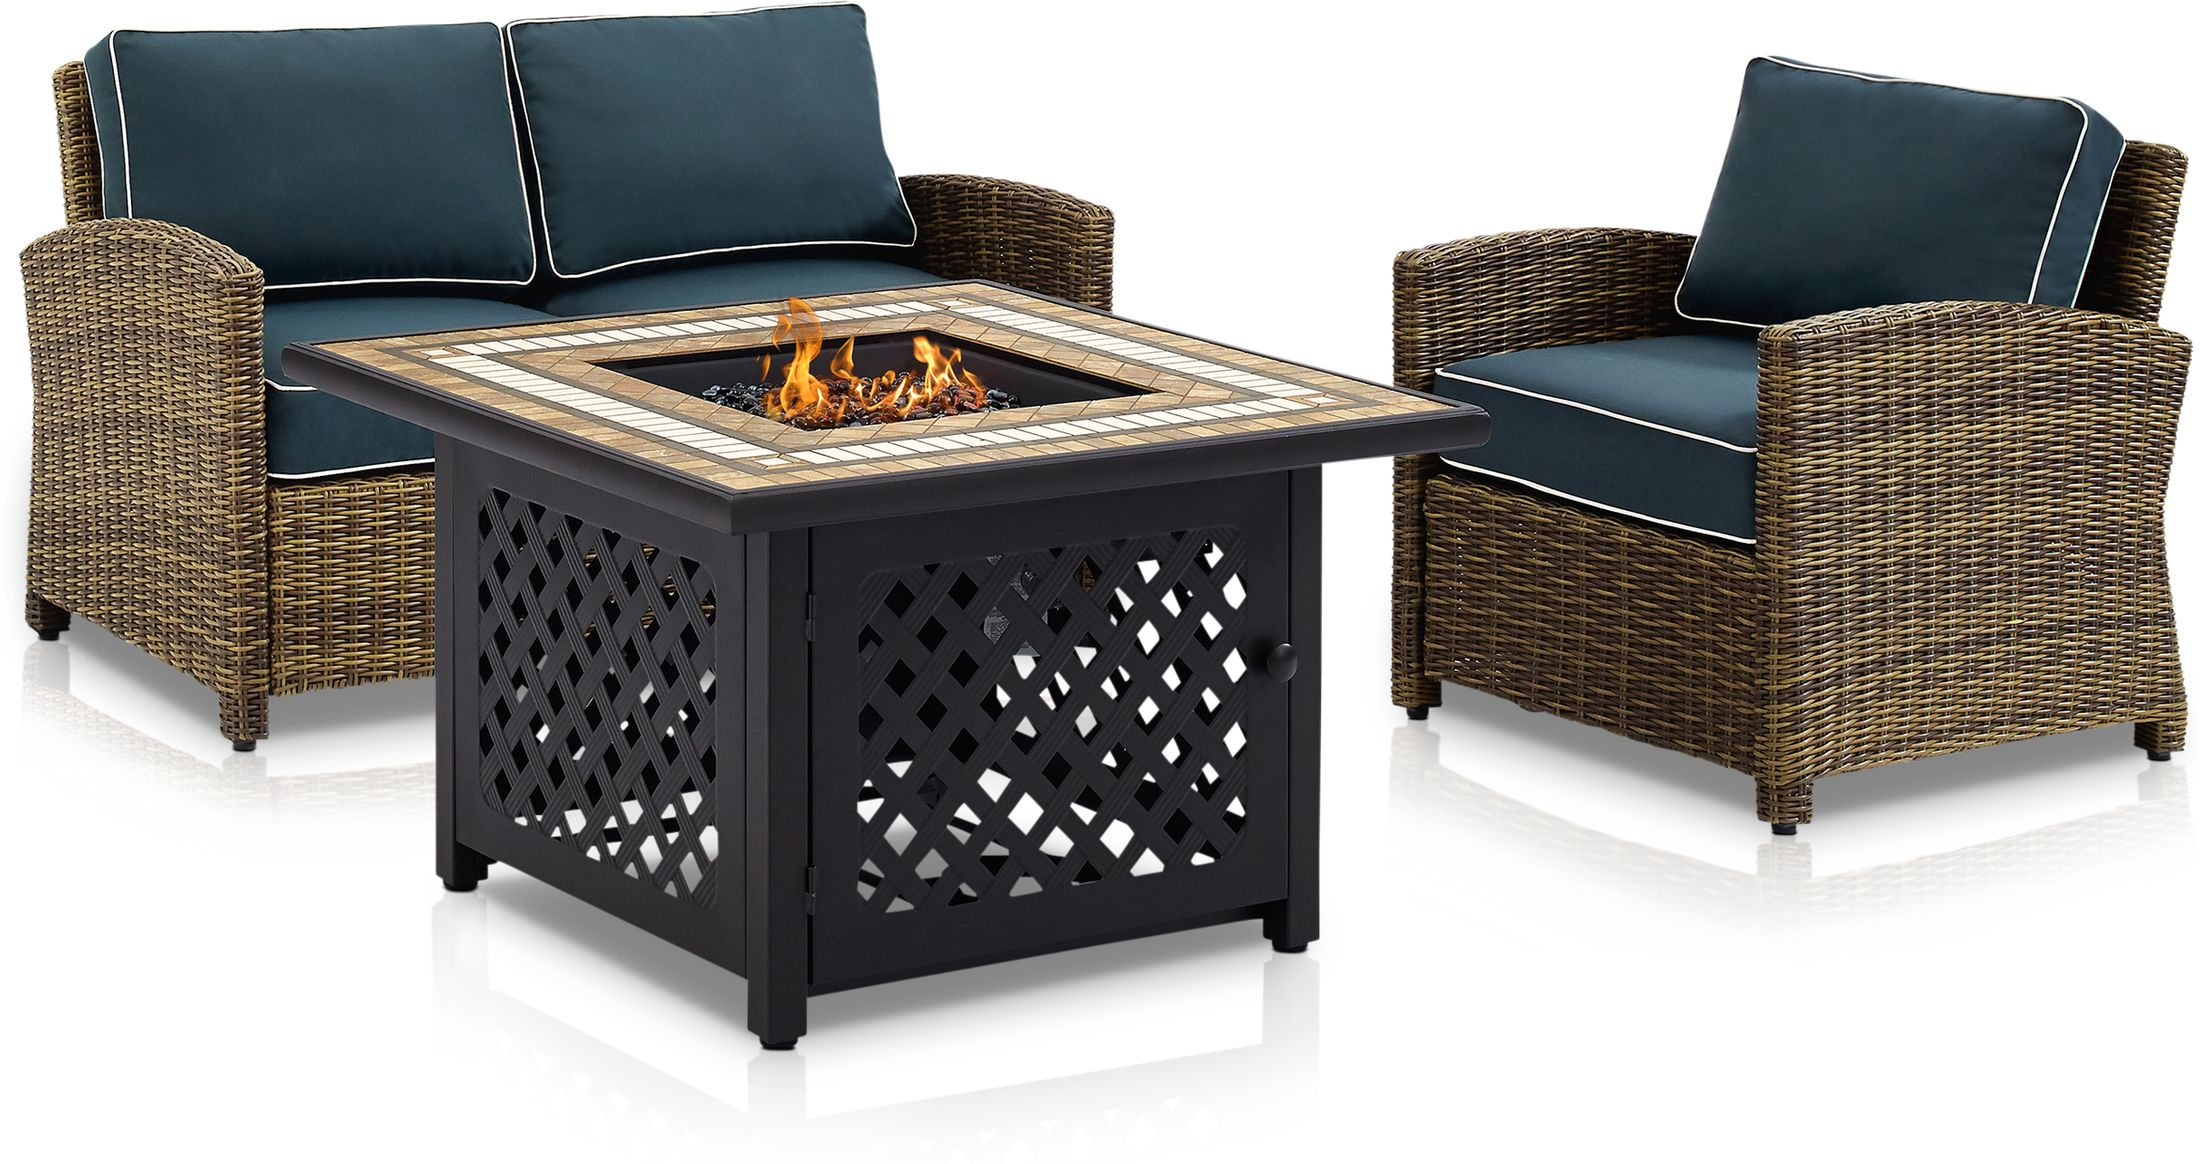 Outdoor Furniture - Destin Outdoor Loveseat, Chair and Fire Table